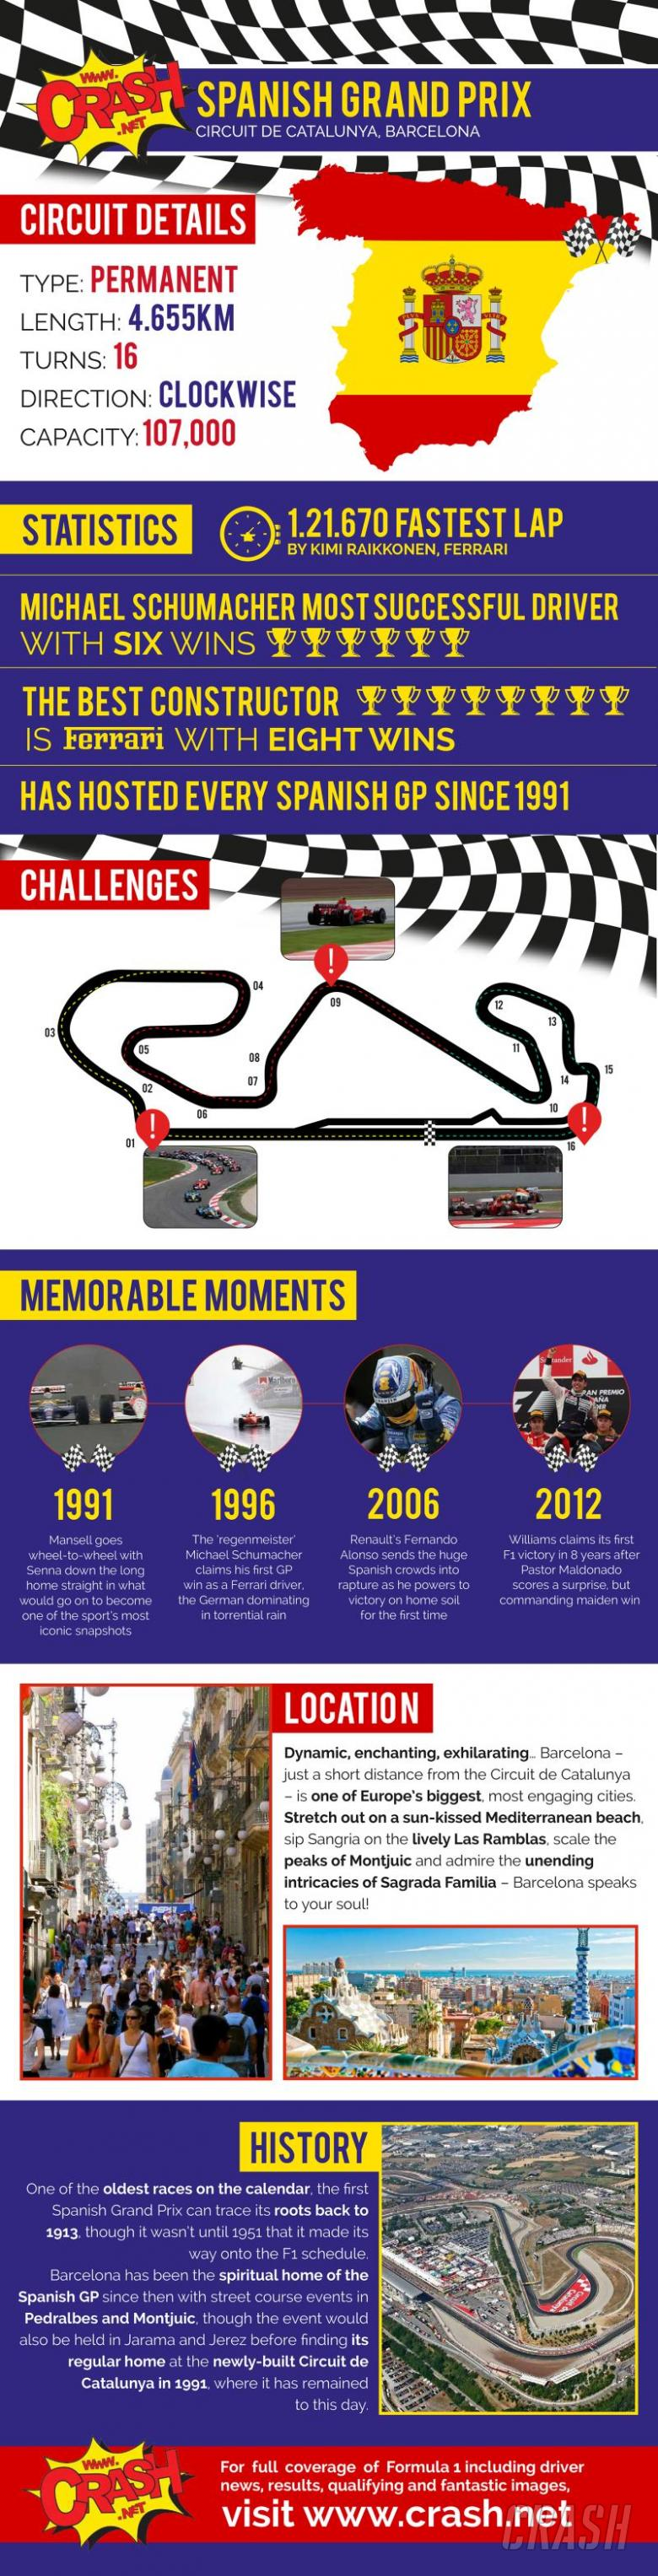 Spanish Grand Prix Infographic: All you need to know!